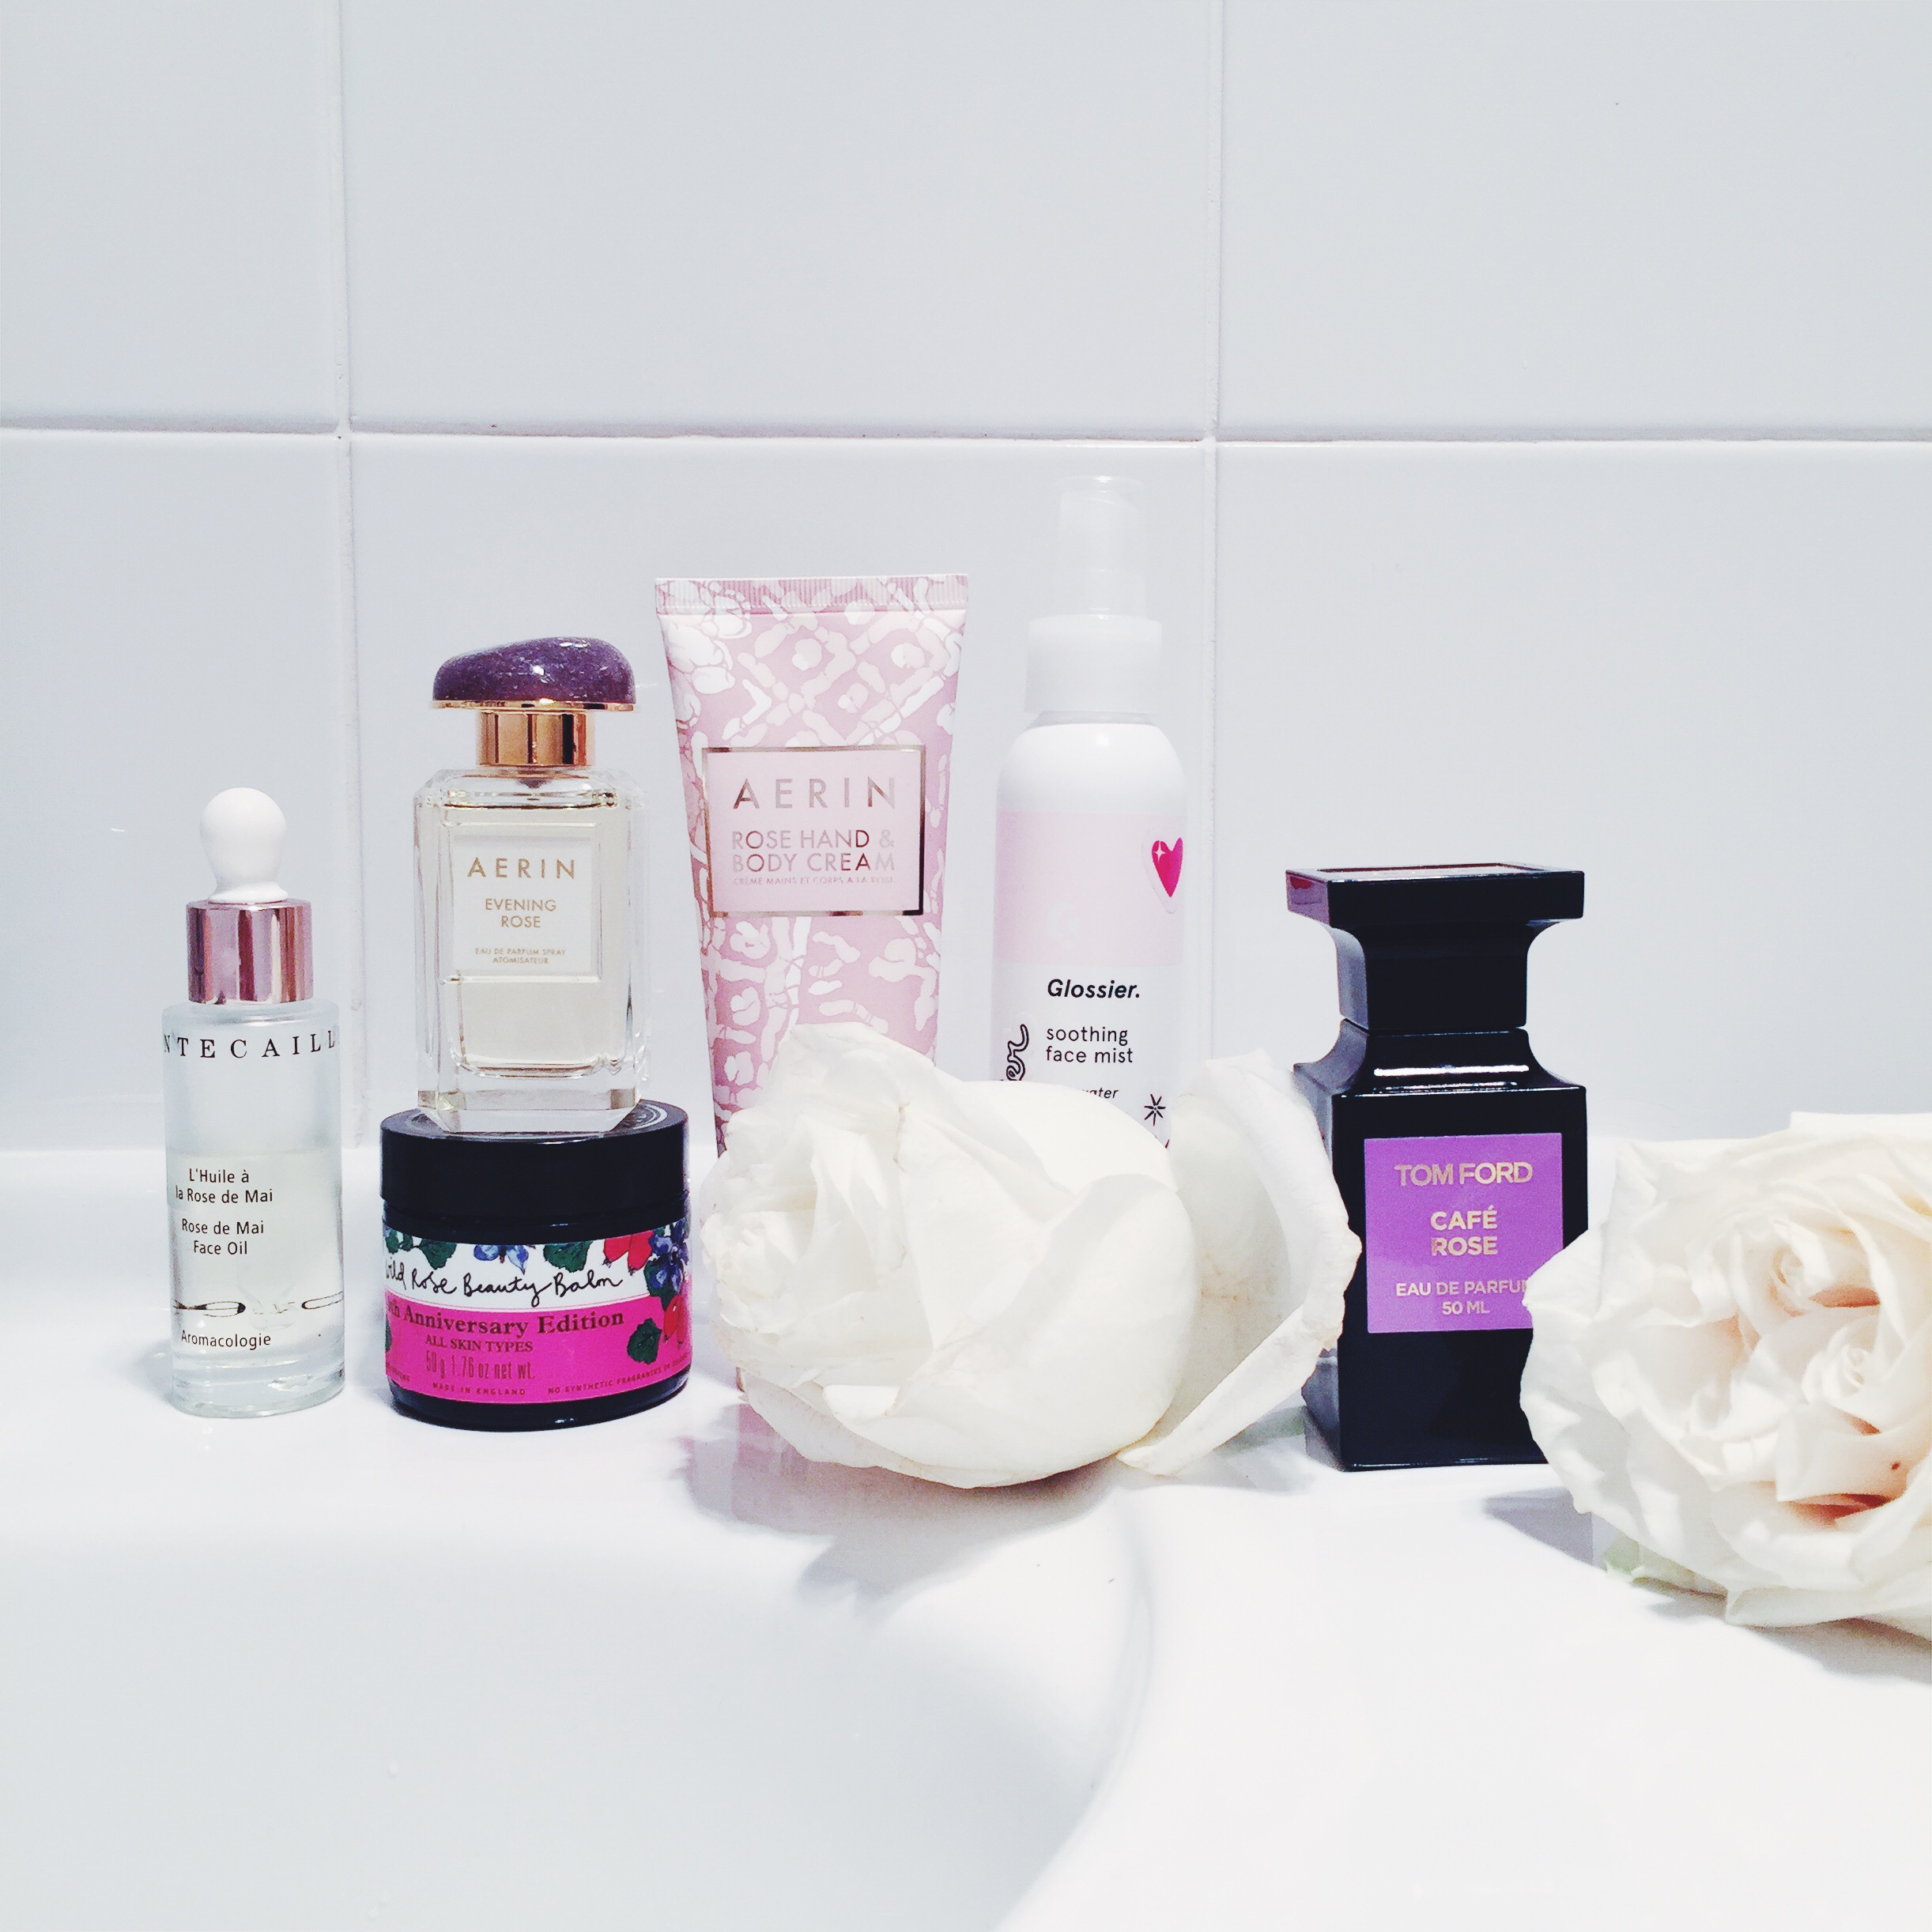 rena_rose_scented_beauty_products_skincare